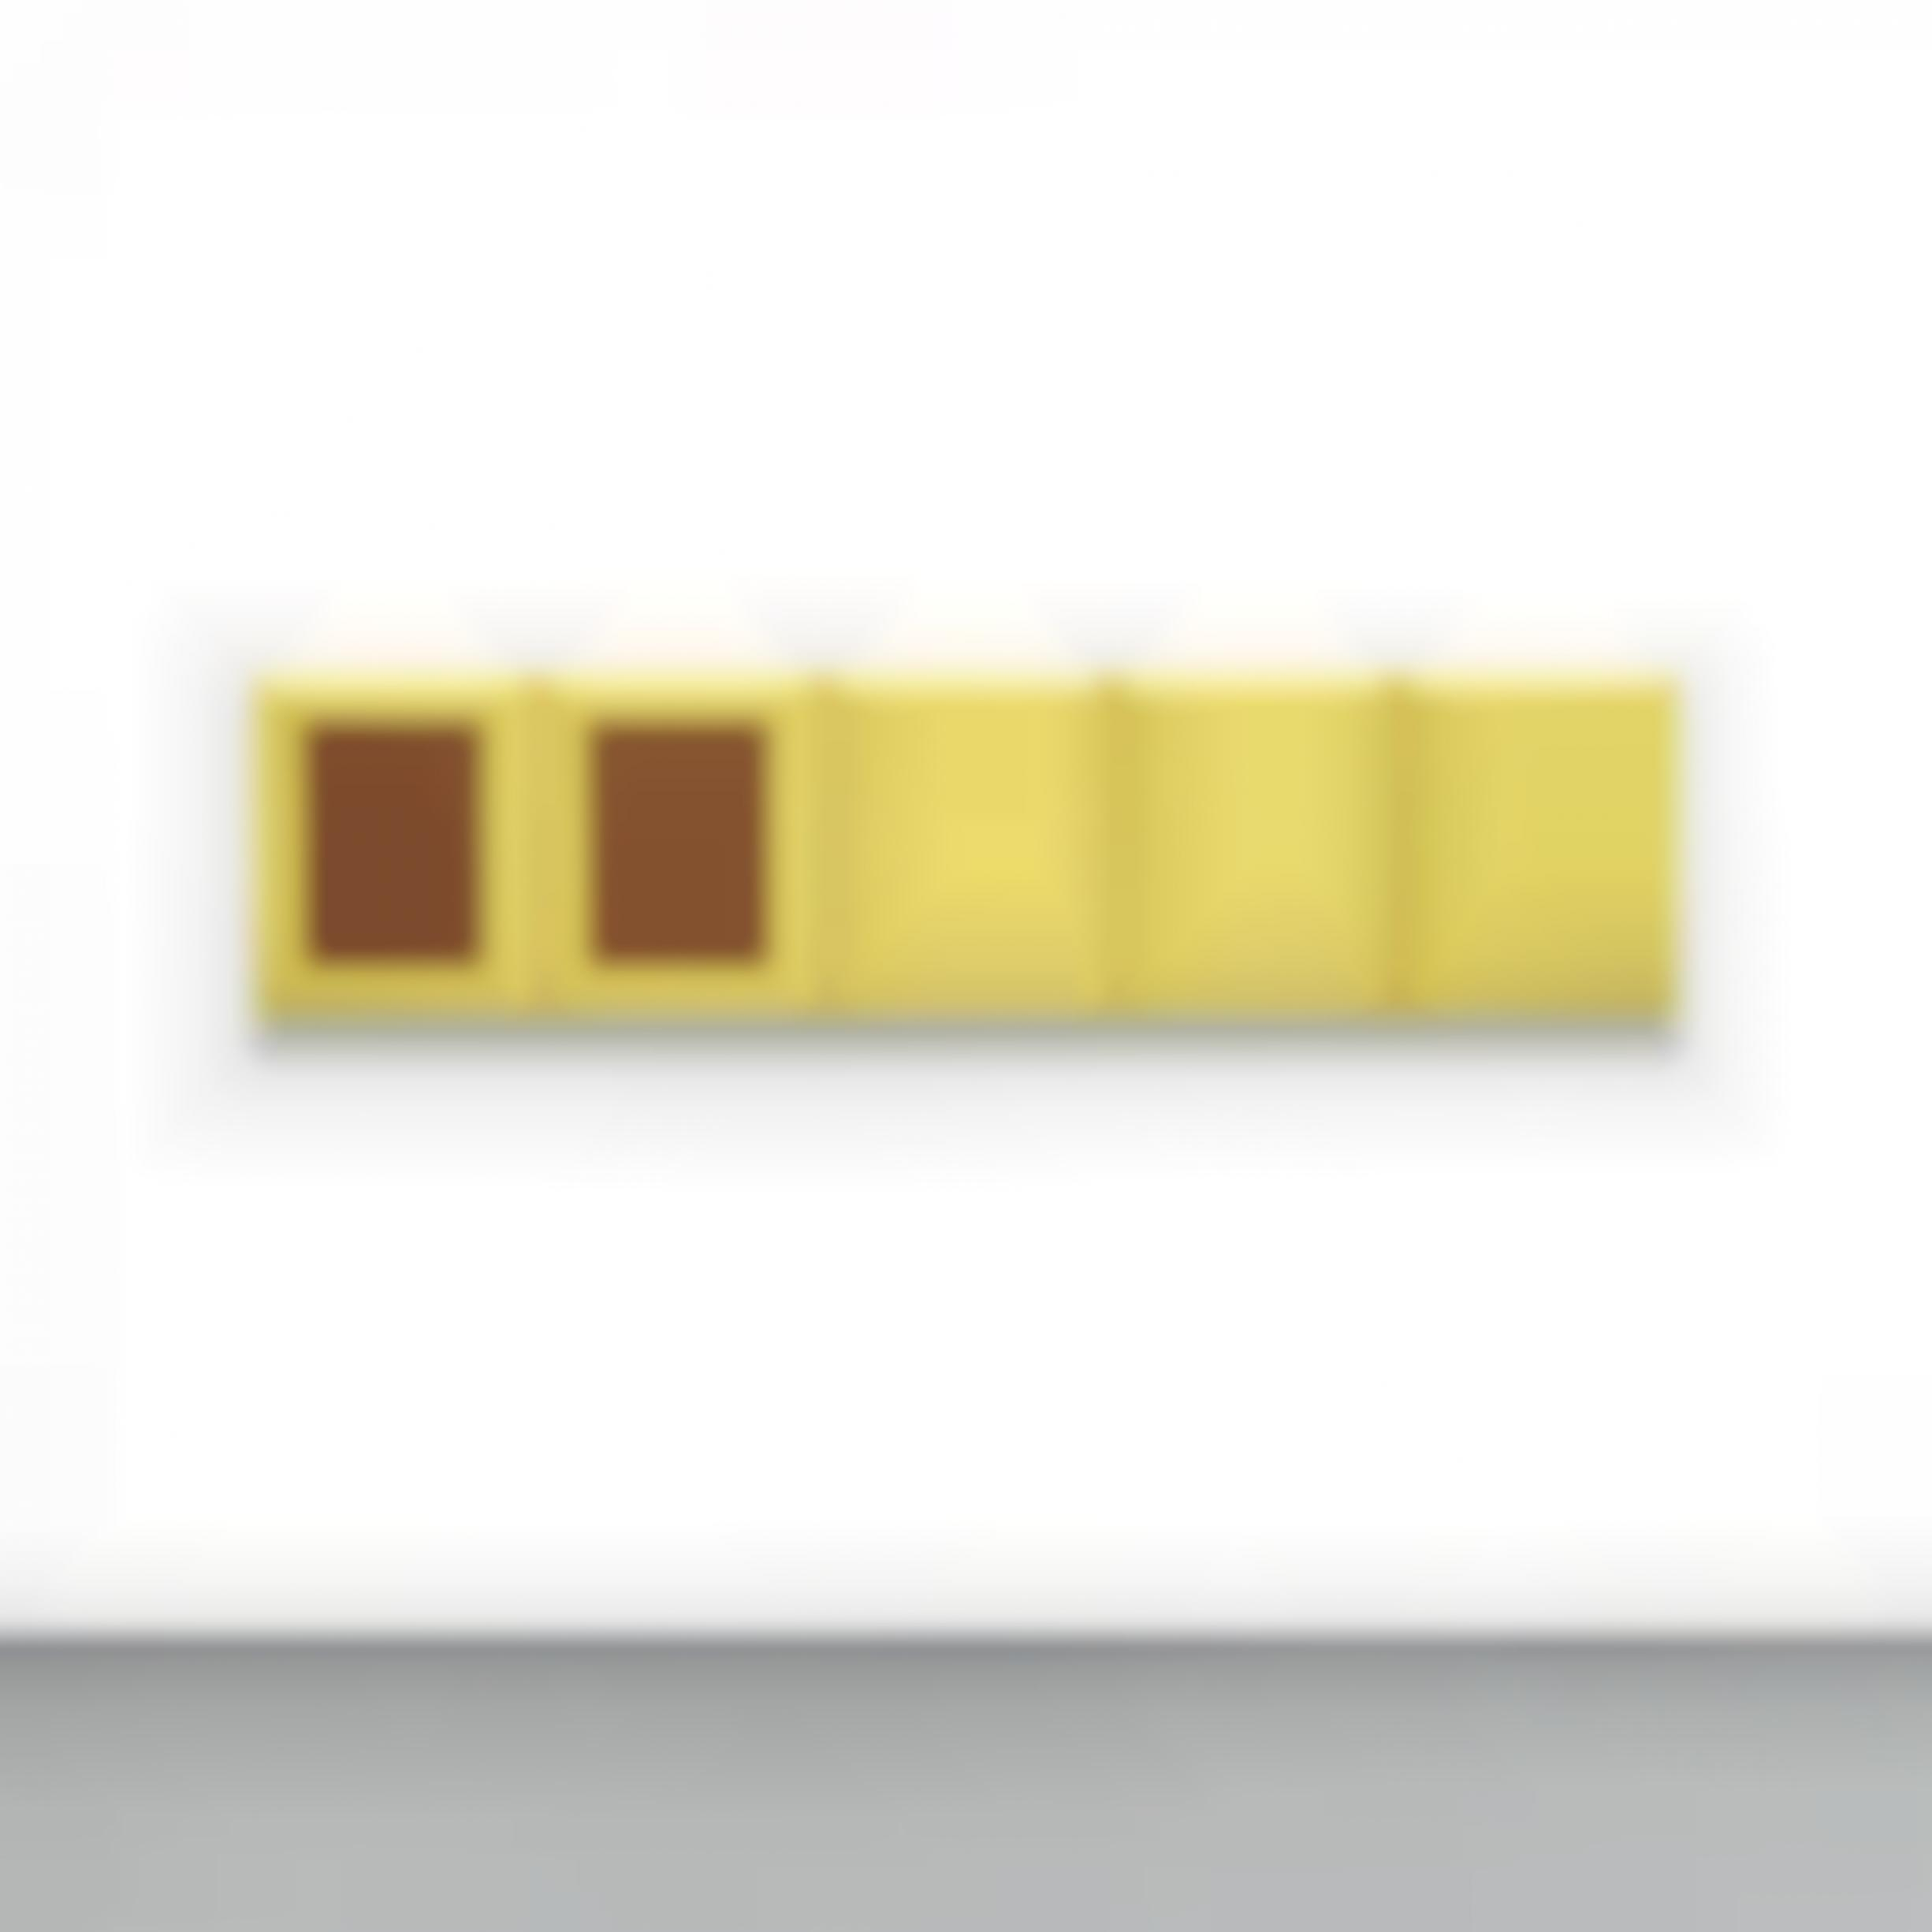 Elad Lassry-Untitled (Sp Yellow Cabinet)-2012